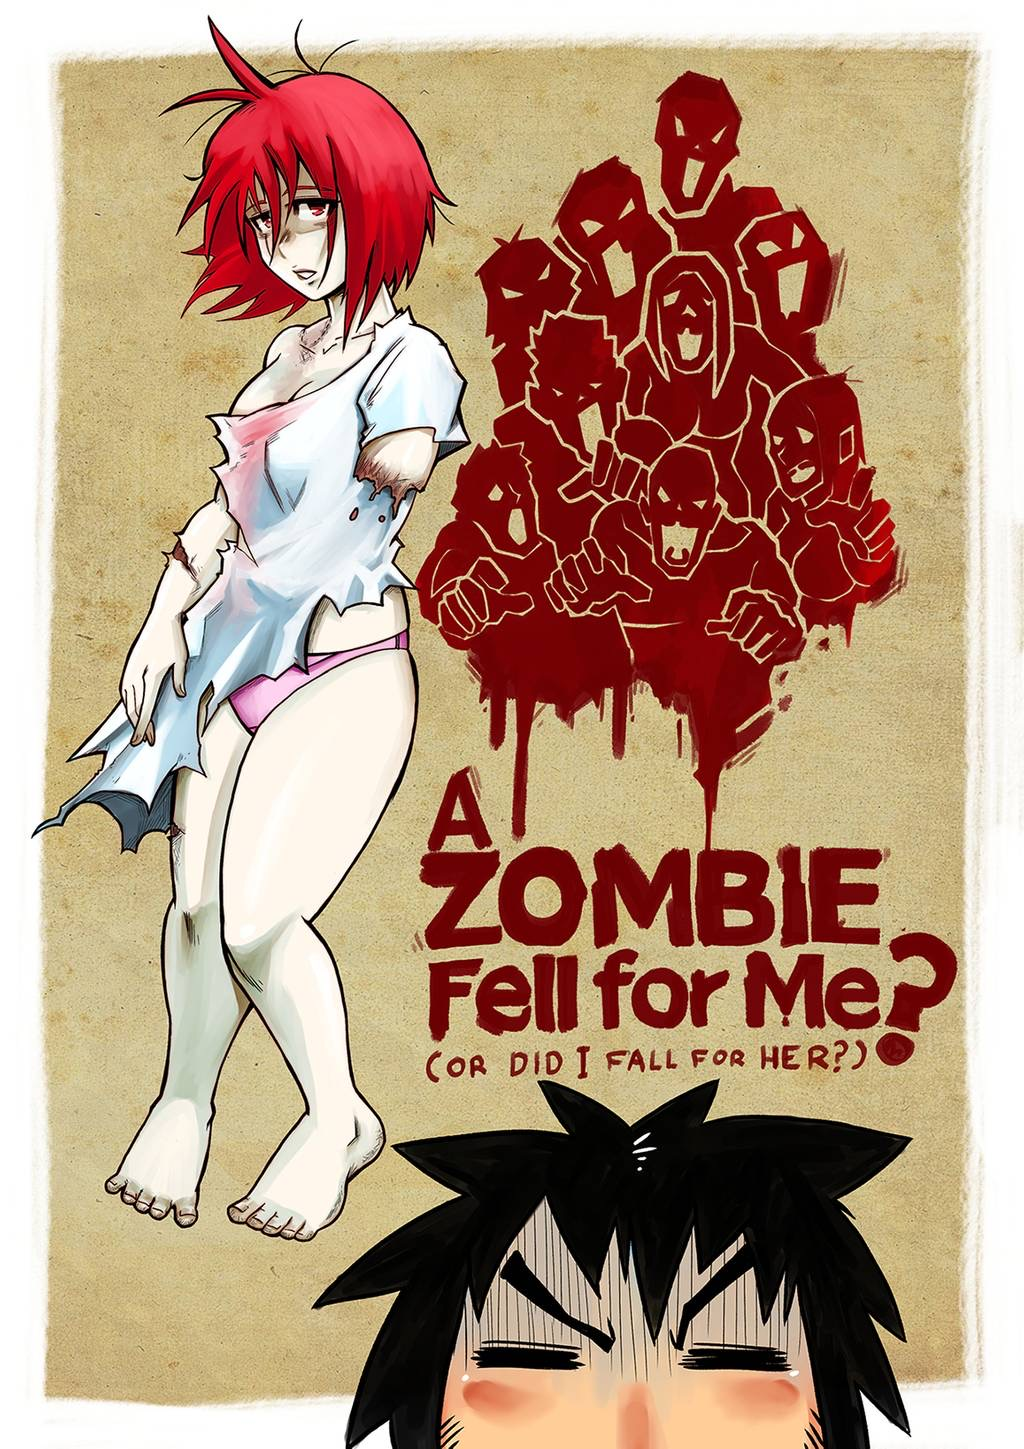 Creature-Cuties-Zombie-girl-Porn-Comic-ahegao-Halloween-artist-Mr.E-turned-out-kissing-romance-cunnilingus-oral-sex-big-breasts-Monster-girl-straight-sex-A-Zombie-Fell-for-Me-?